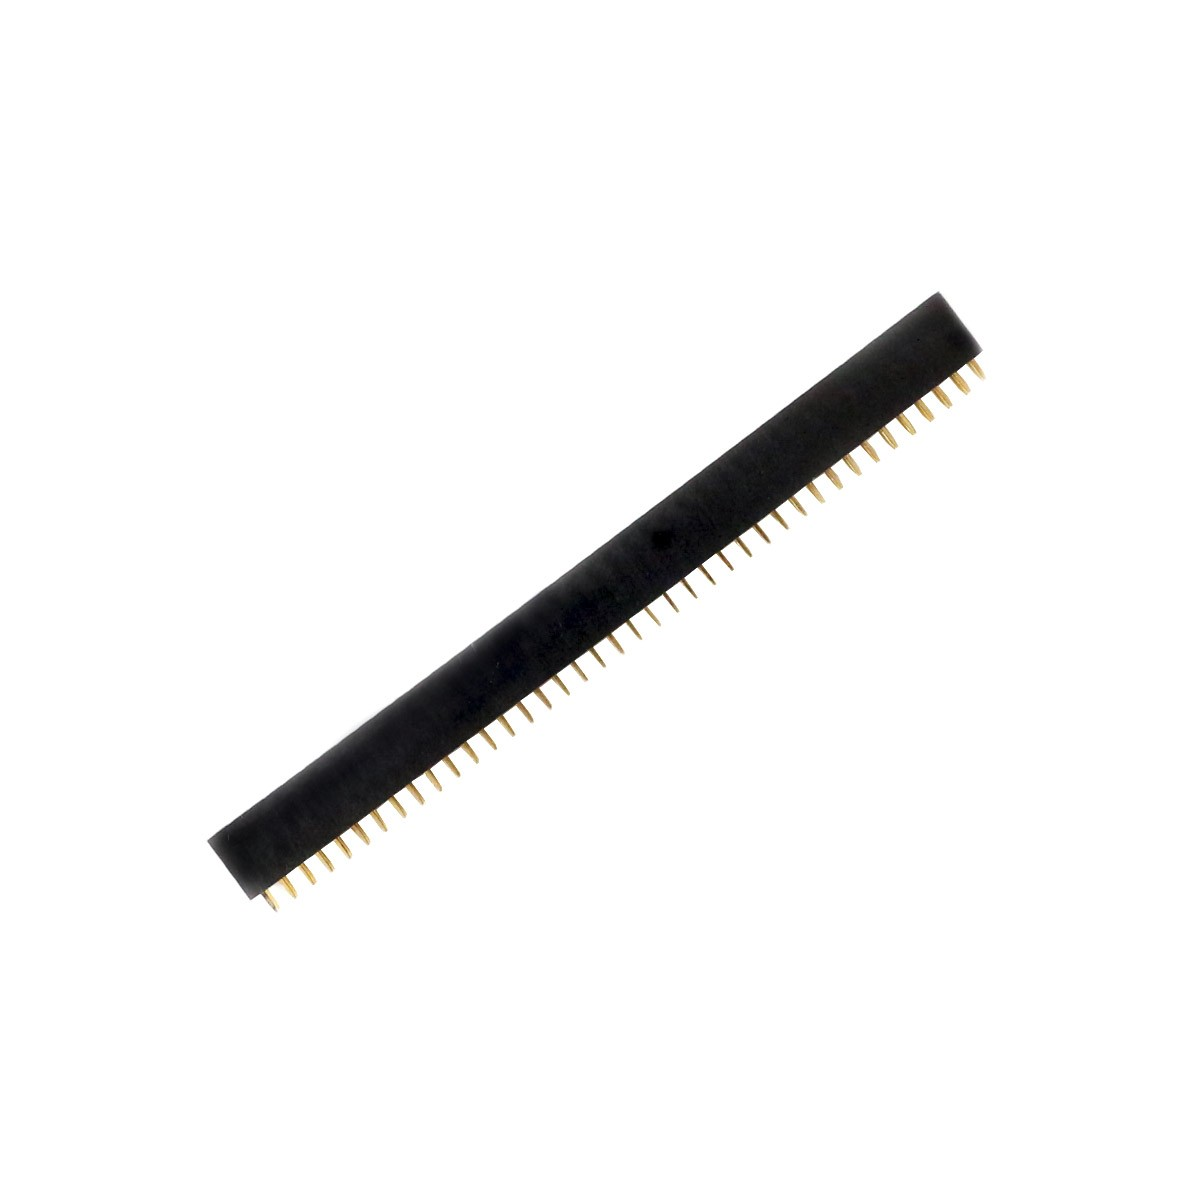 Male / Female Pin Header Straight Connector 2x40 Pins 2.54mm Spacing